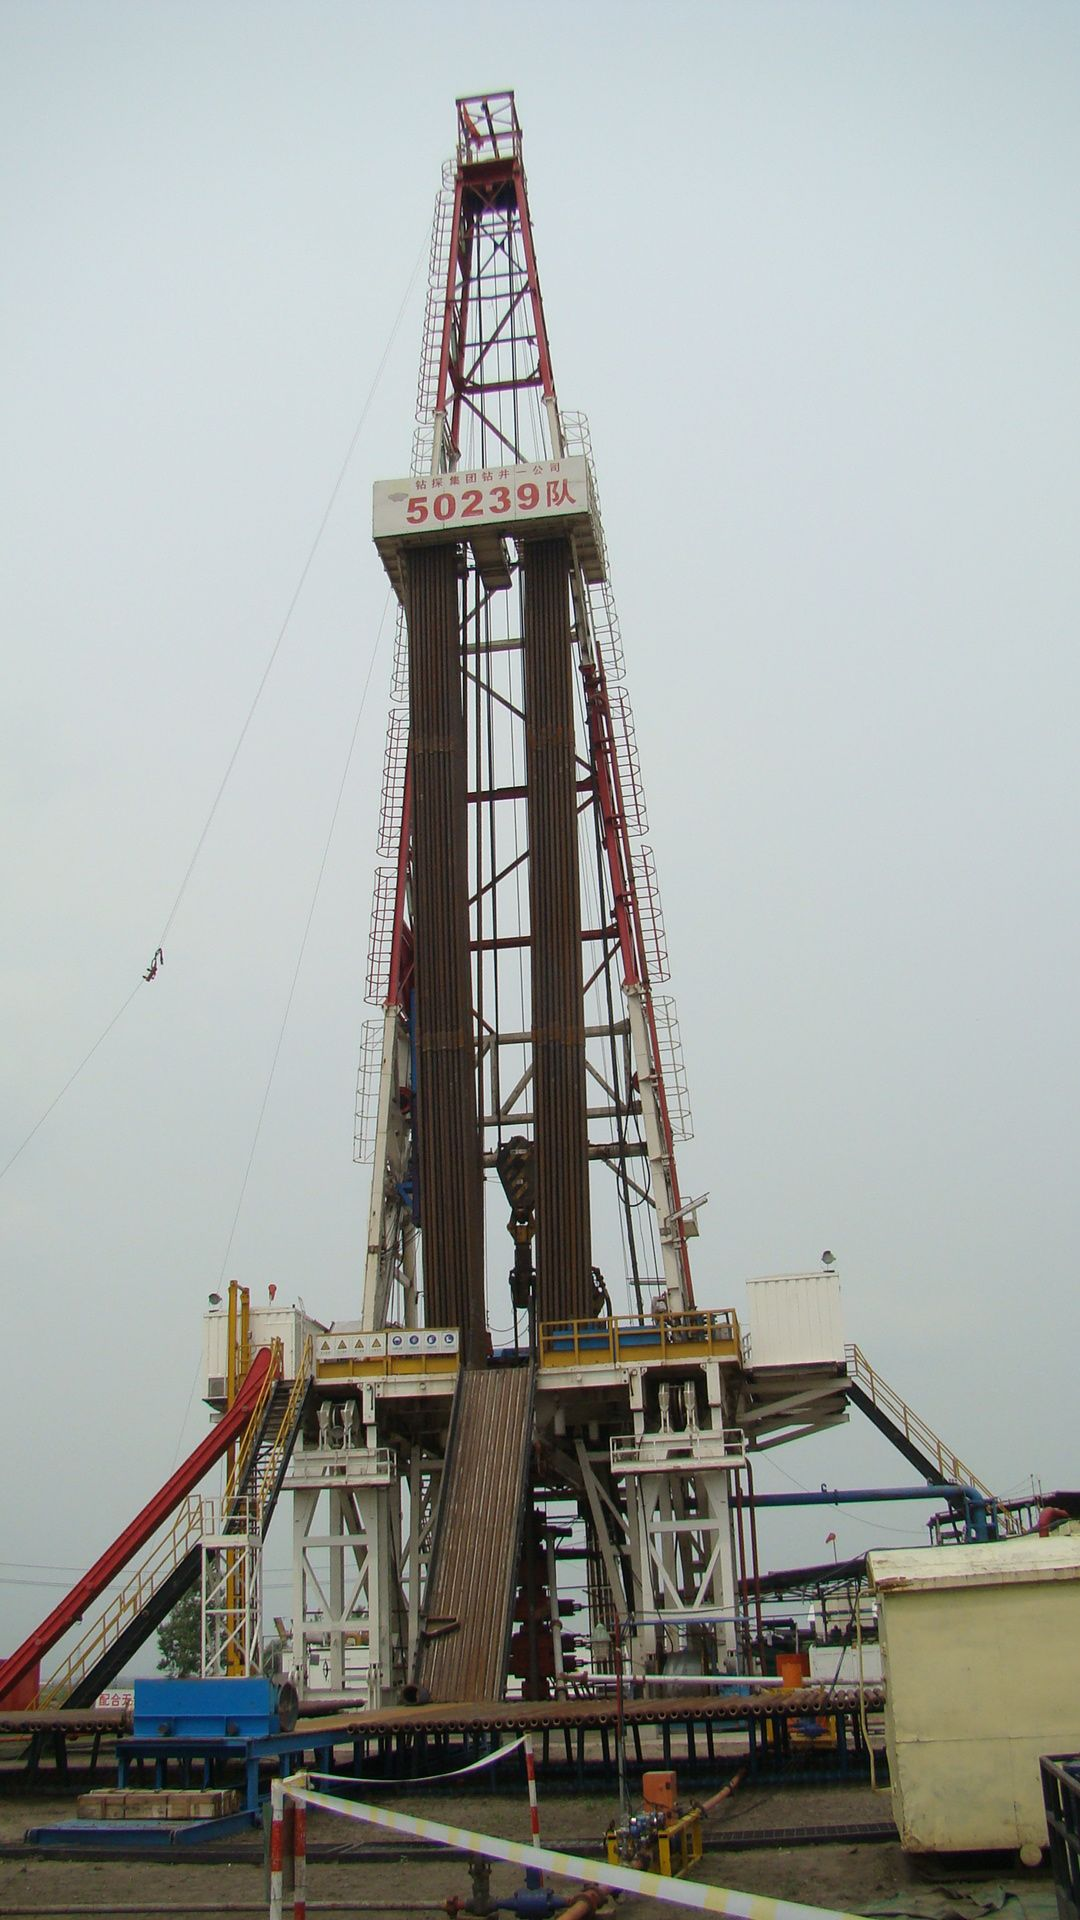 Land drilling rig pictures Carp Rig Guide - Rig Guide - The Ultimate Rig Guide